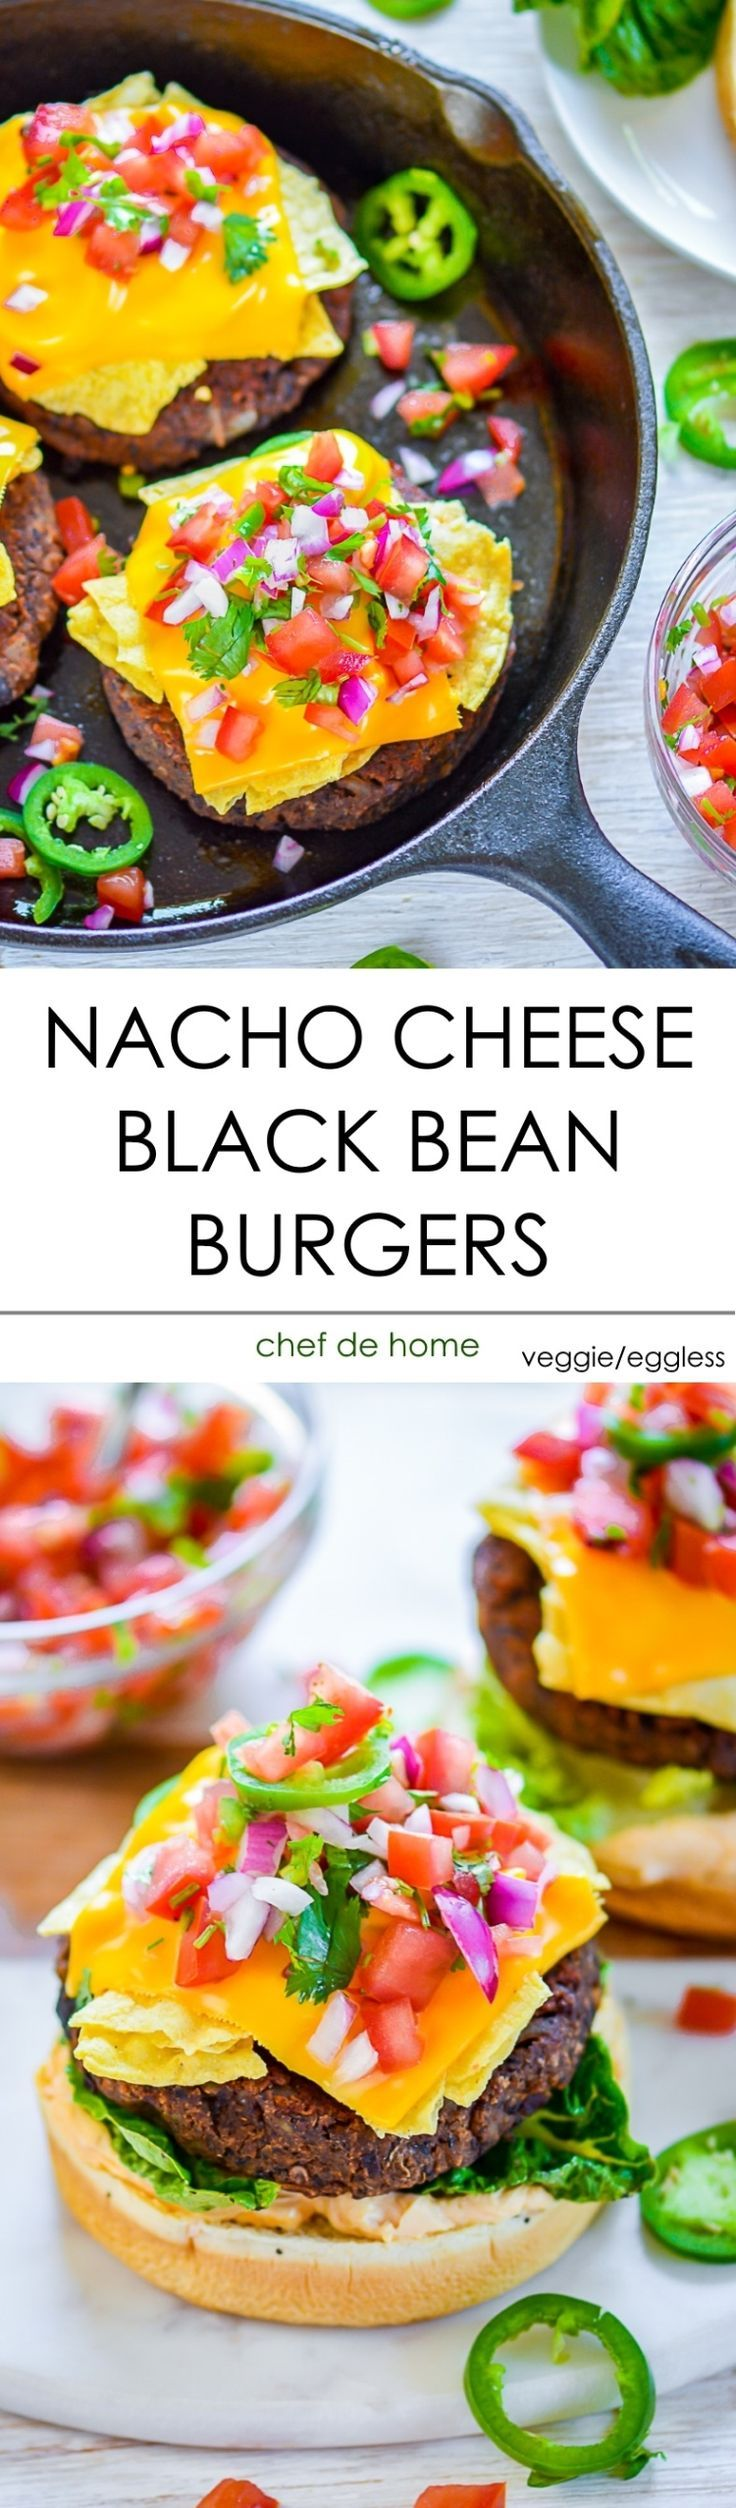 Nacho Cheese Crunch Black Bean Burger Recipe. Spicy Black Bean Burgers, egg-less, meatless veggie black bean patties spiced with chipotle and topped with all-you-want-in-nacho-cheese crunchy toppings!! These Spicy Black Bean Burgers are perfect to serve deliciousness of Nachos and taste of summer grilling... all summed up in one scrumptious meal! Smoky seasoned crispy black beans patties.